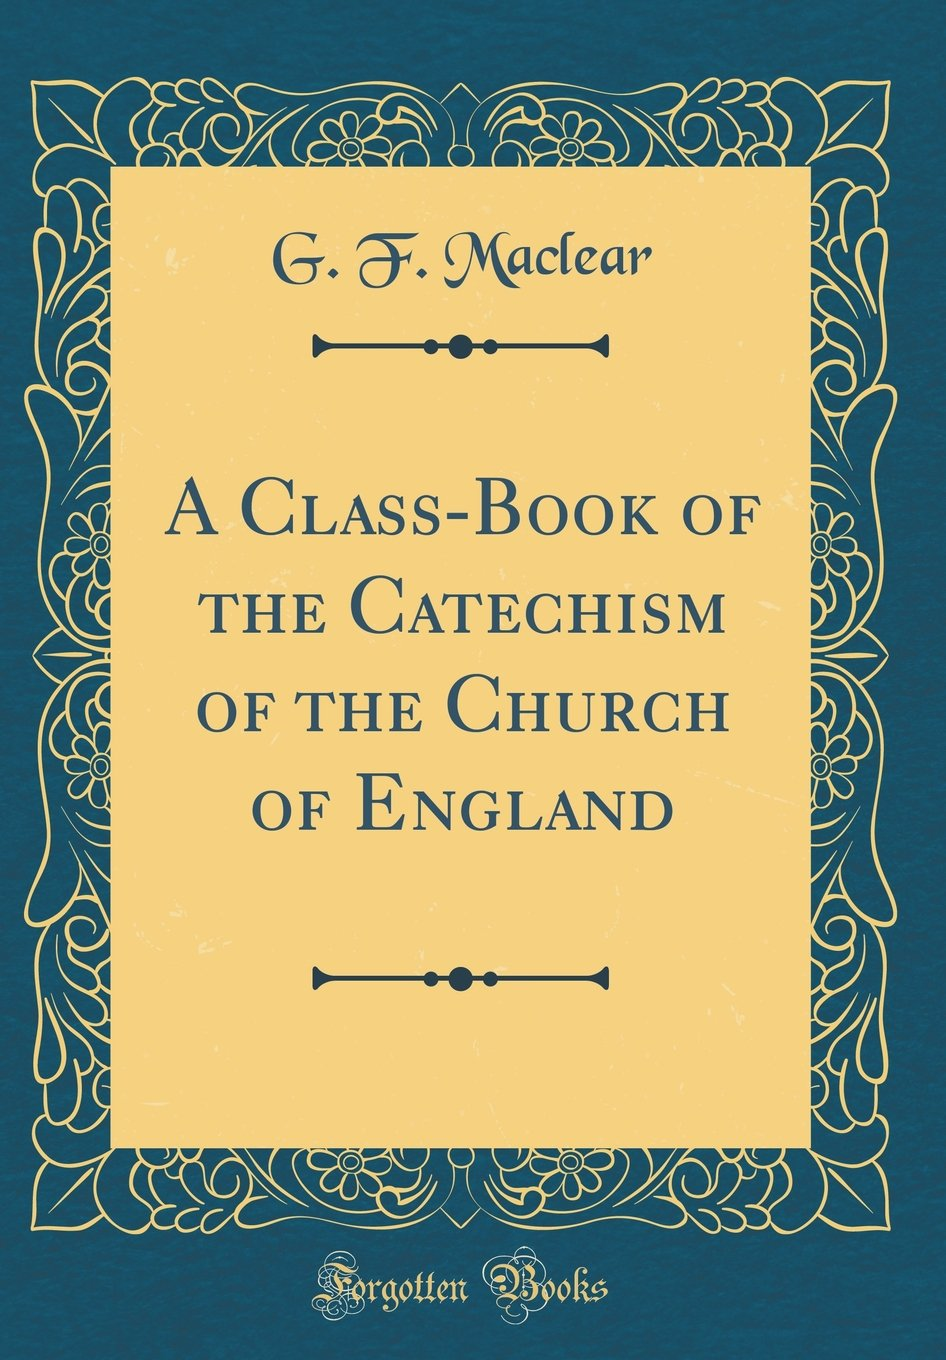 Download A Class-Book of the Catechism of the Church of England (Classic Reprint) PDF